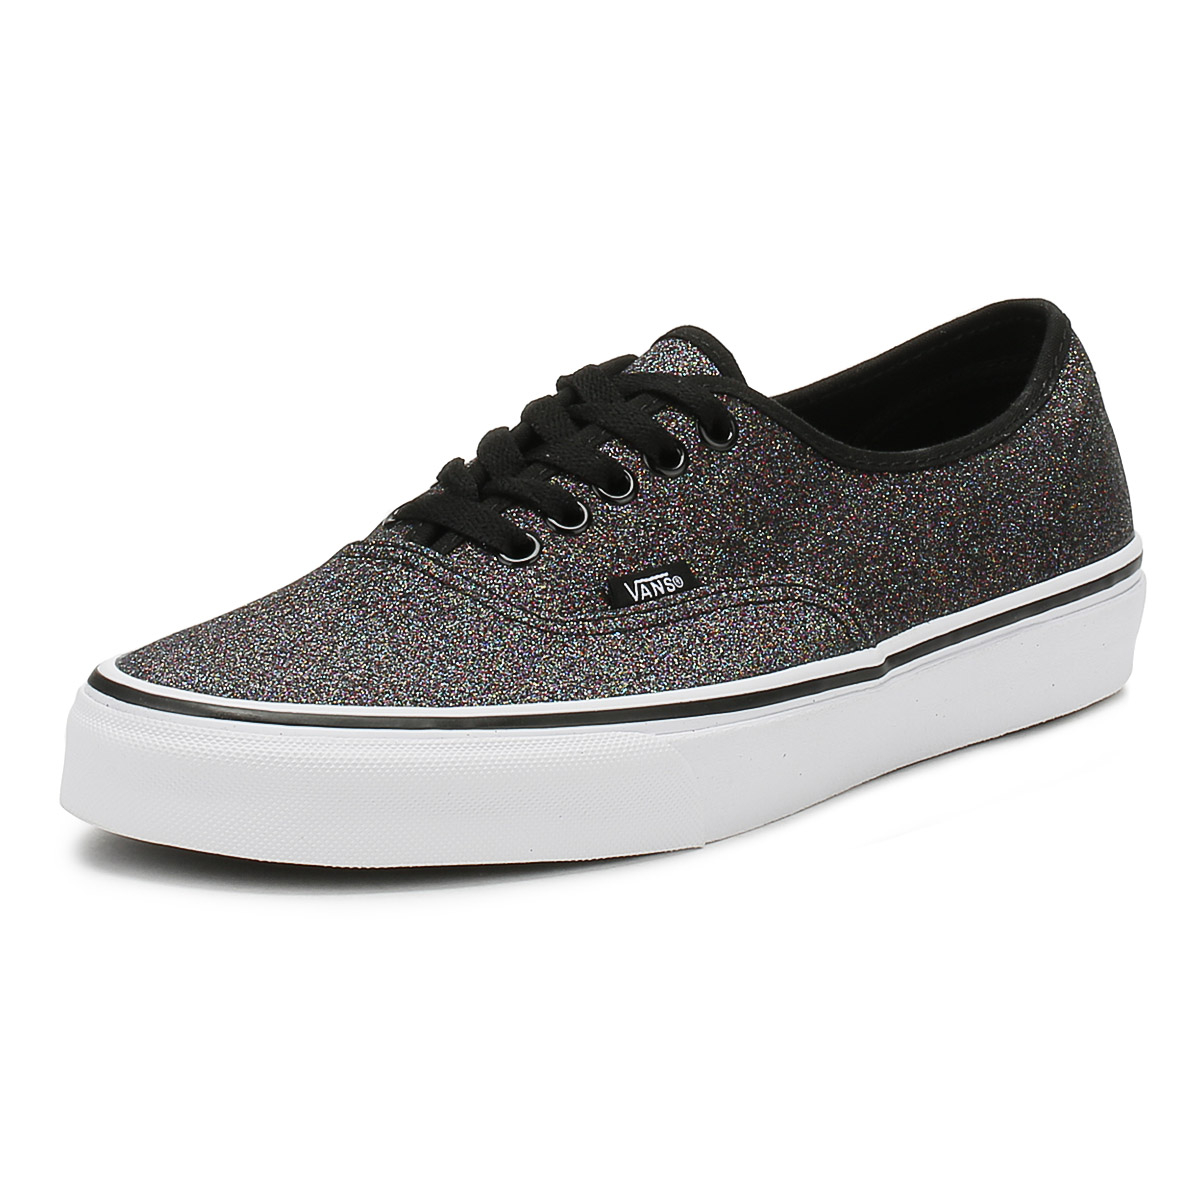 Details about Vans Womens Authentic Trainers Glitter Rainbow Black Lace Up  Ladies Skate Shoes 76174a7ed